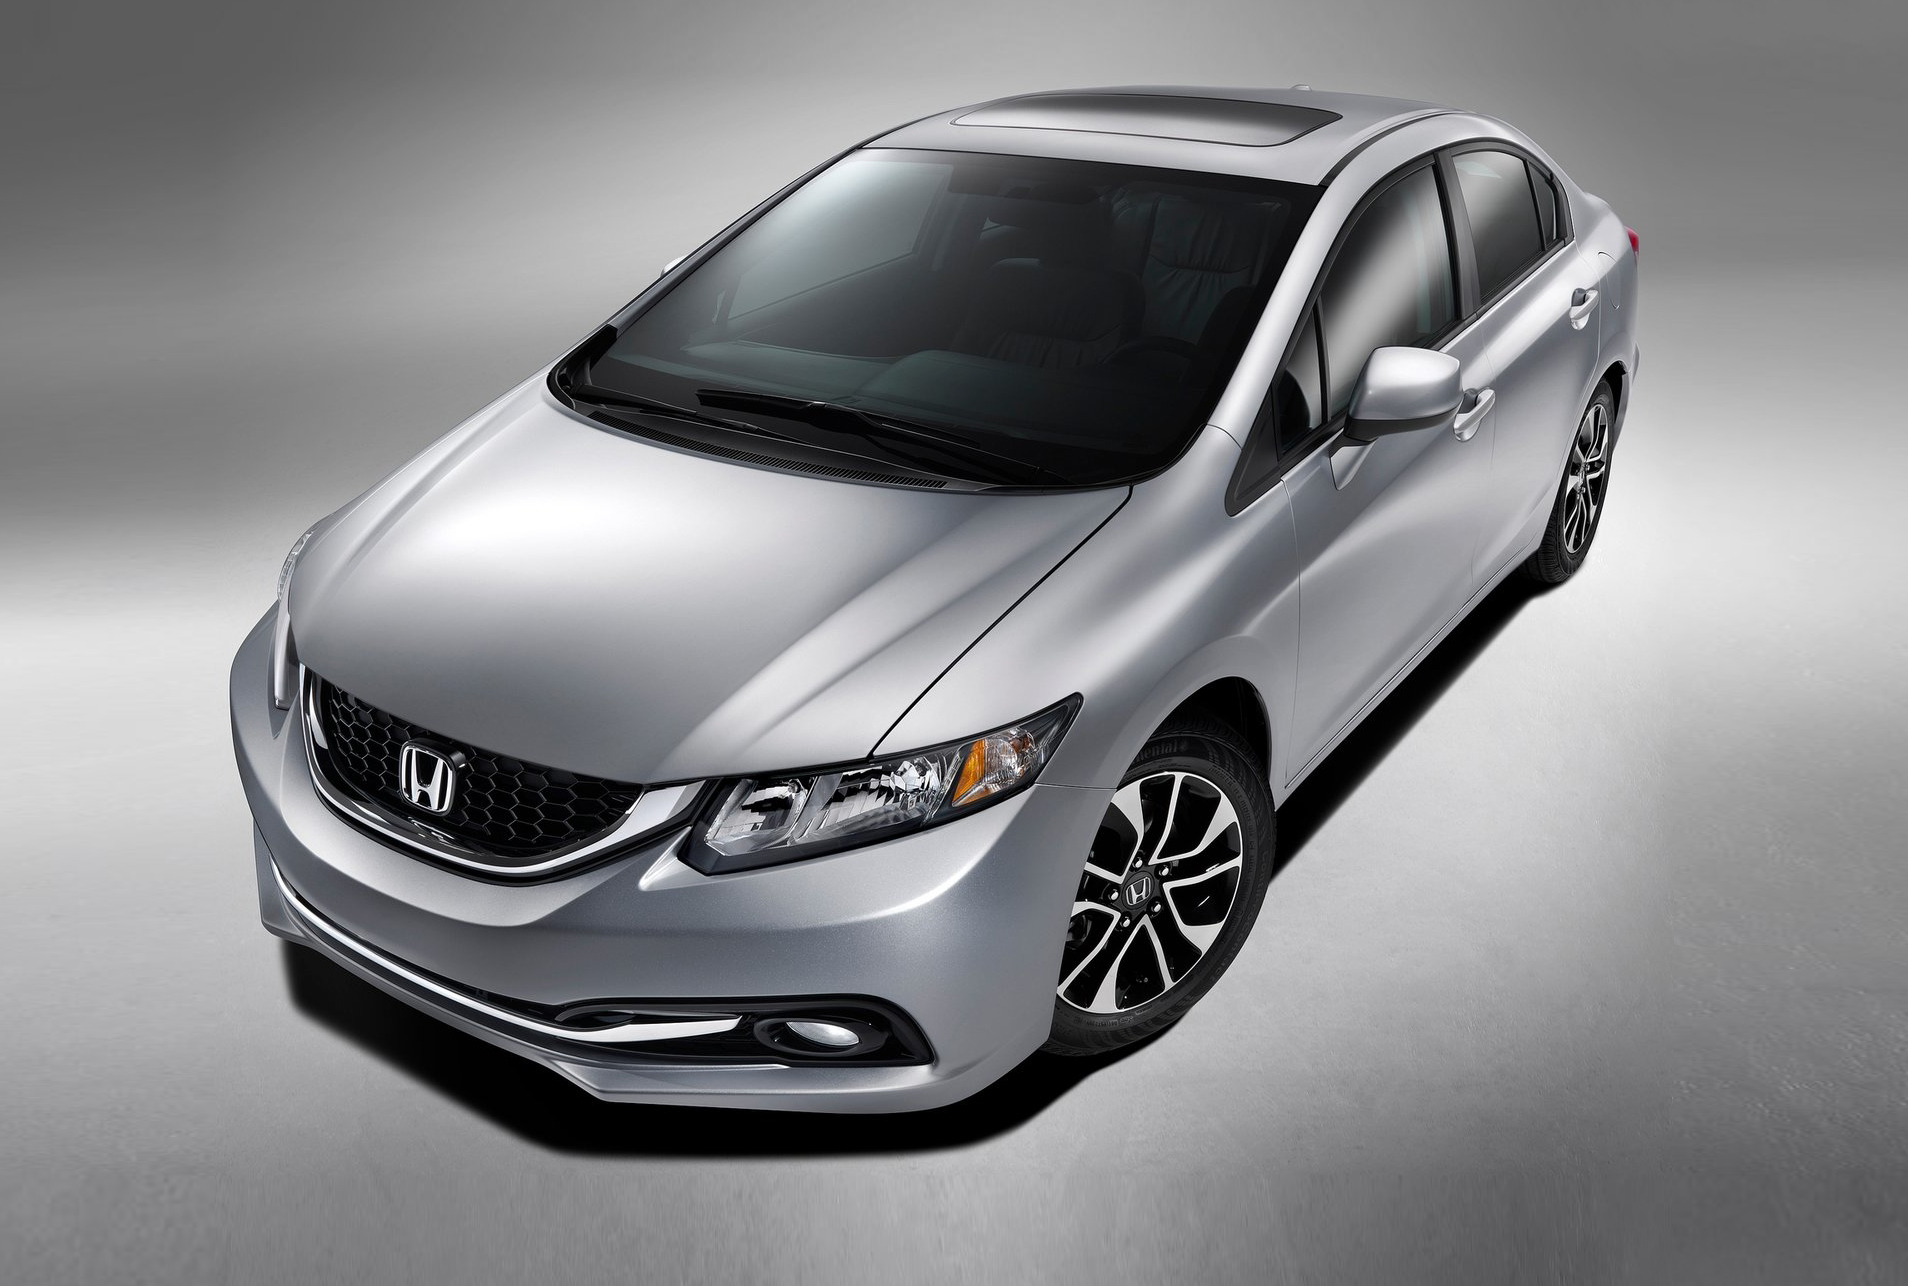 2015 honda civic horsepower - Cars Reviews, Release Date And Price